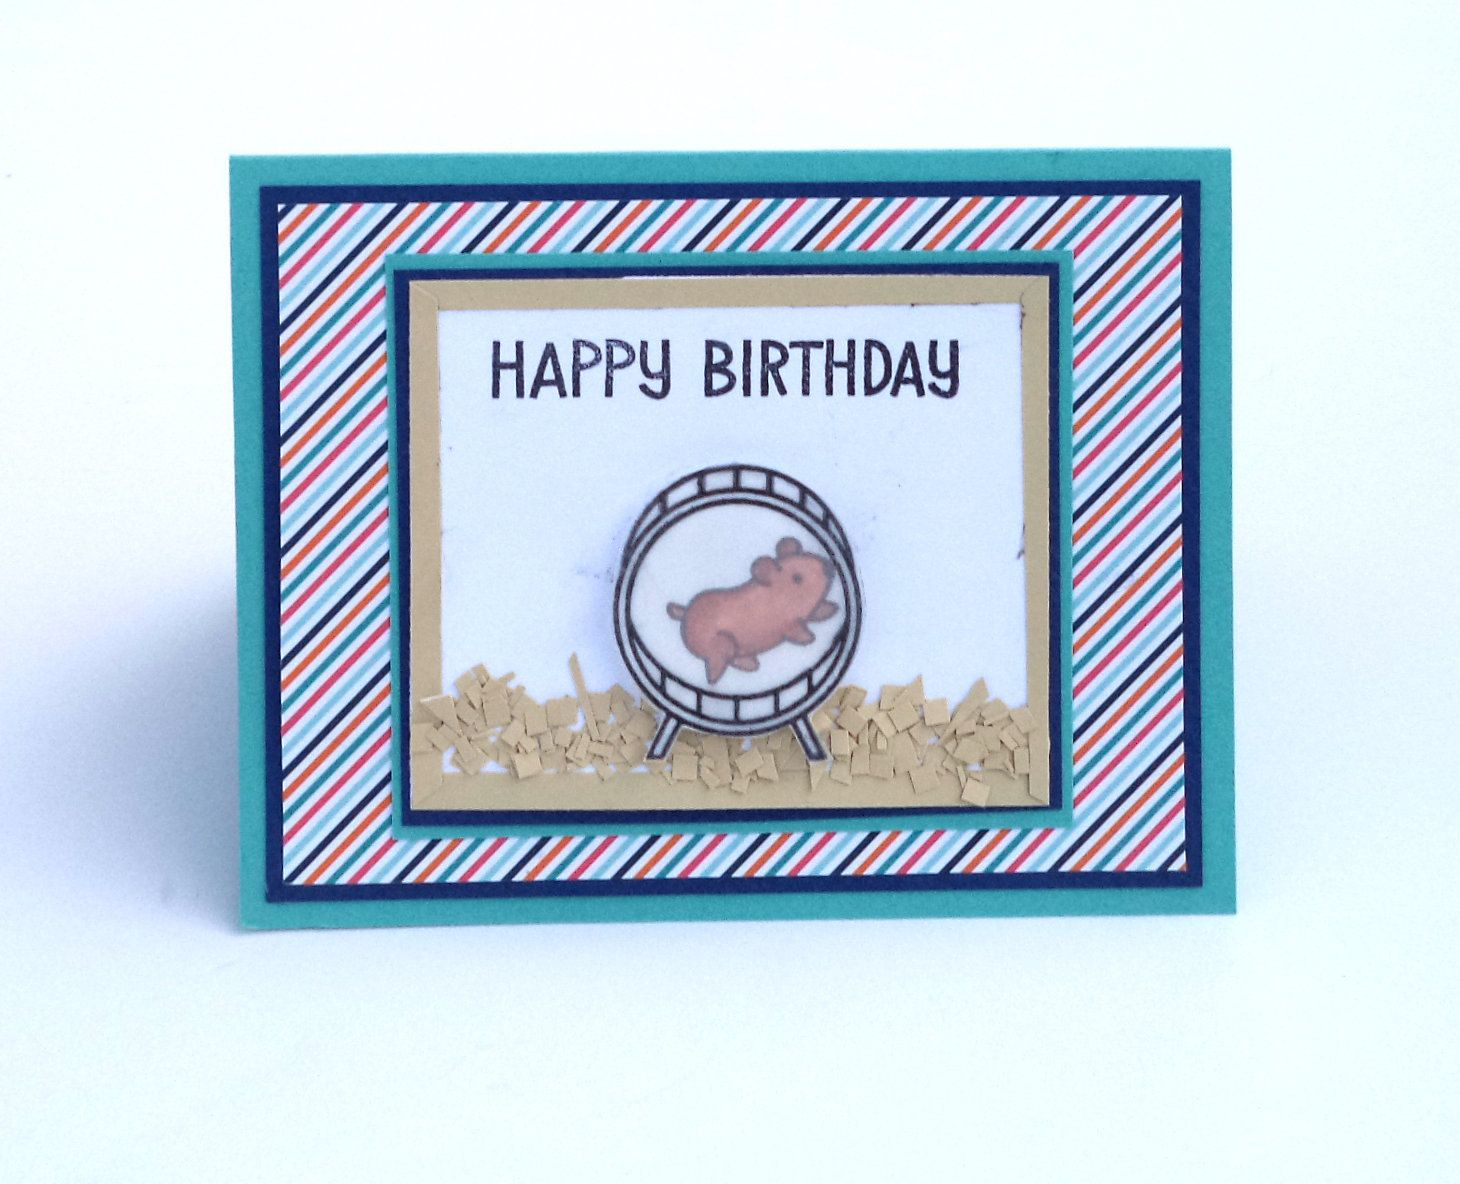 Birthday Card Hamster On Wheel Blue And White With Stripes Etsy Birthday Cards Birthday Stamps Patterned Paper